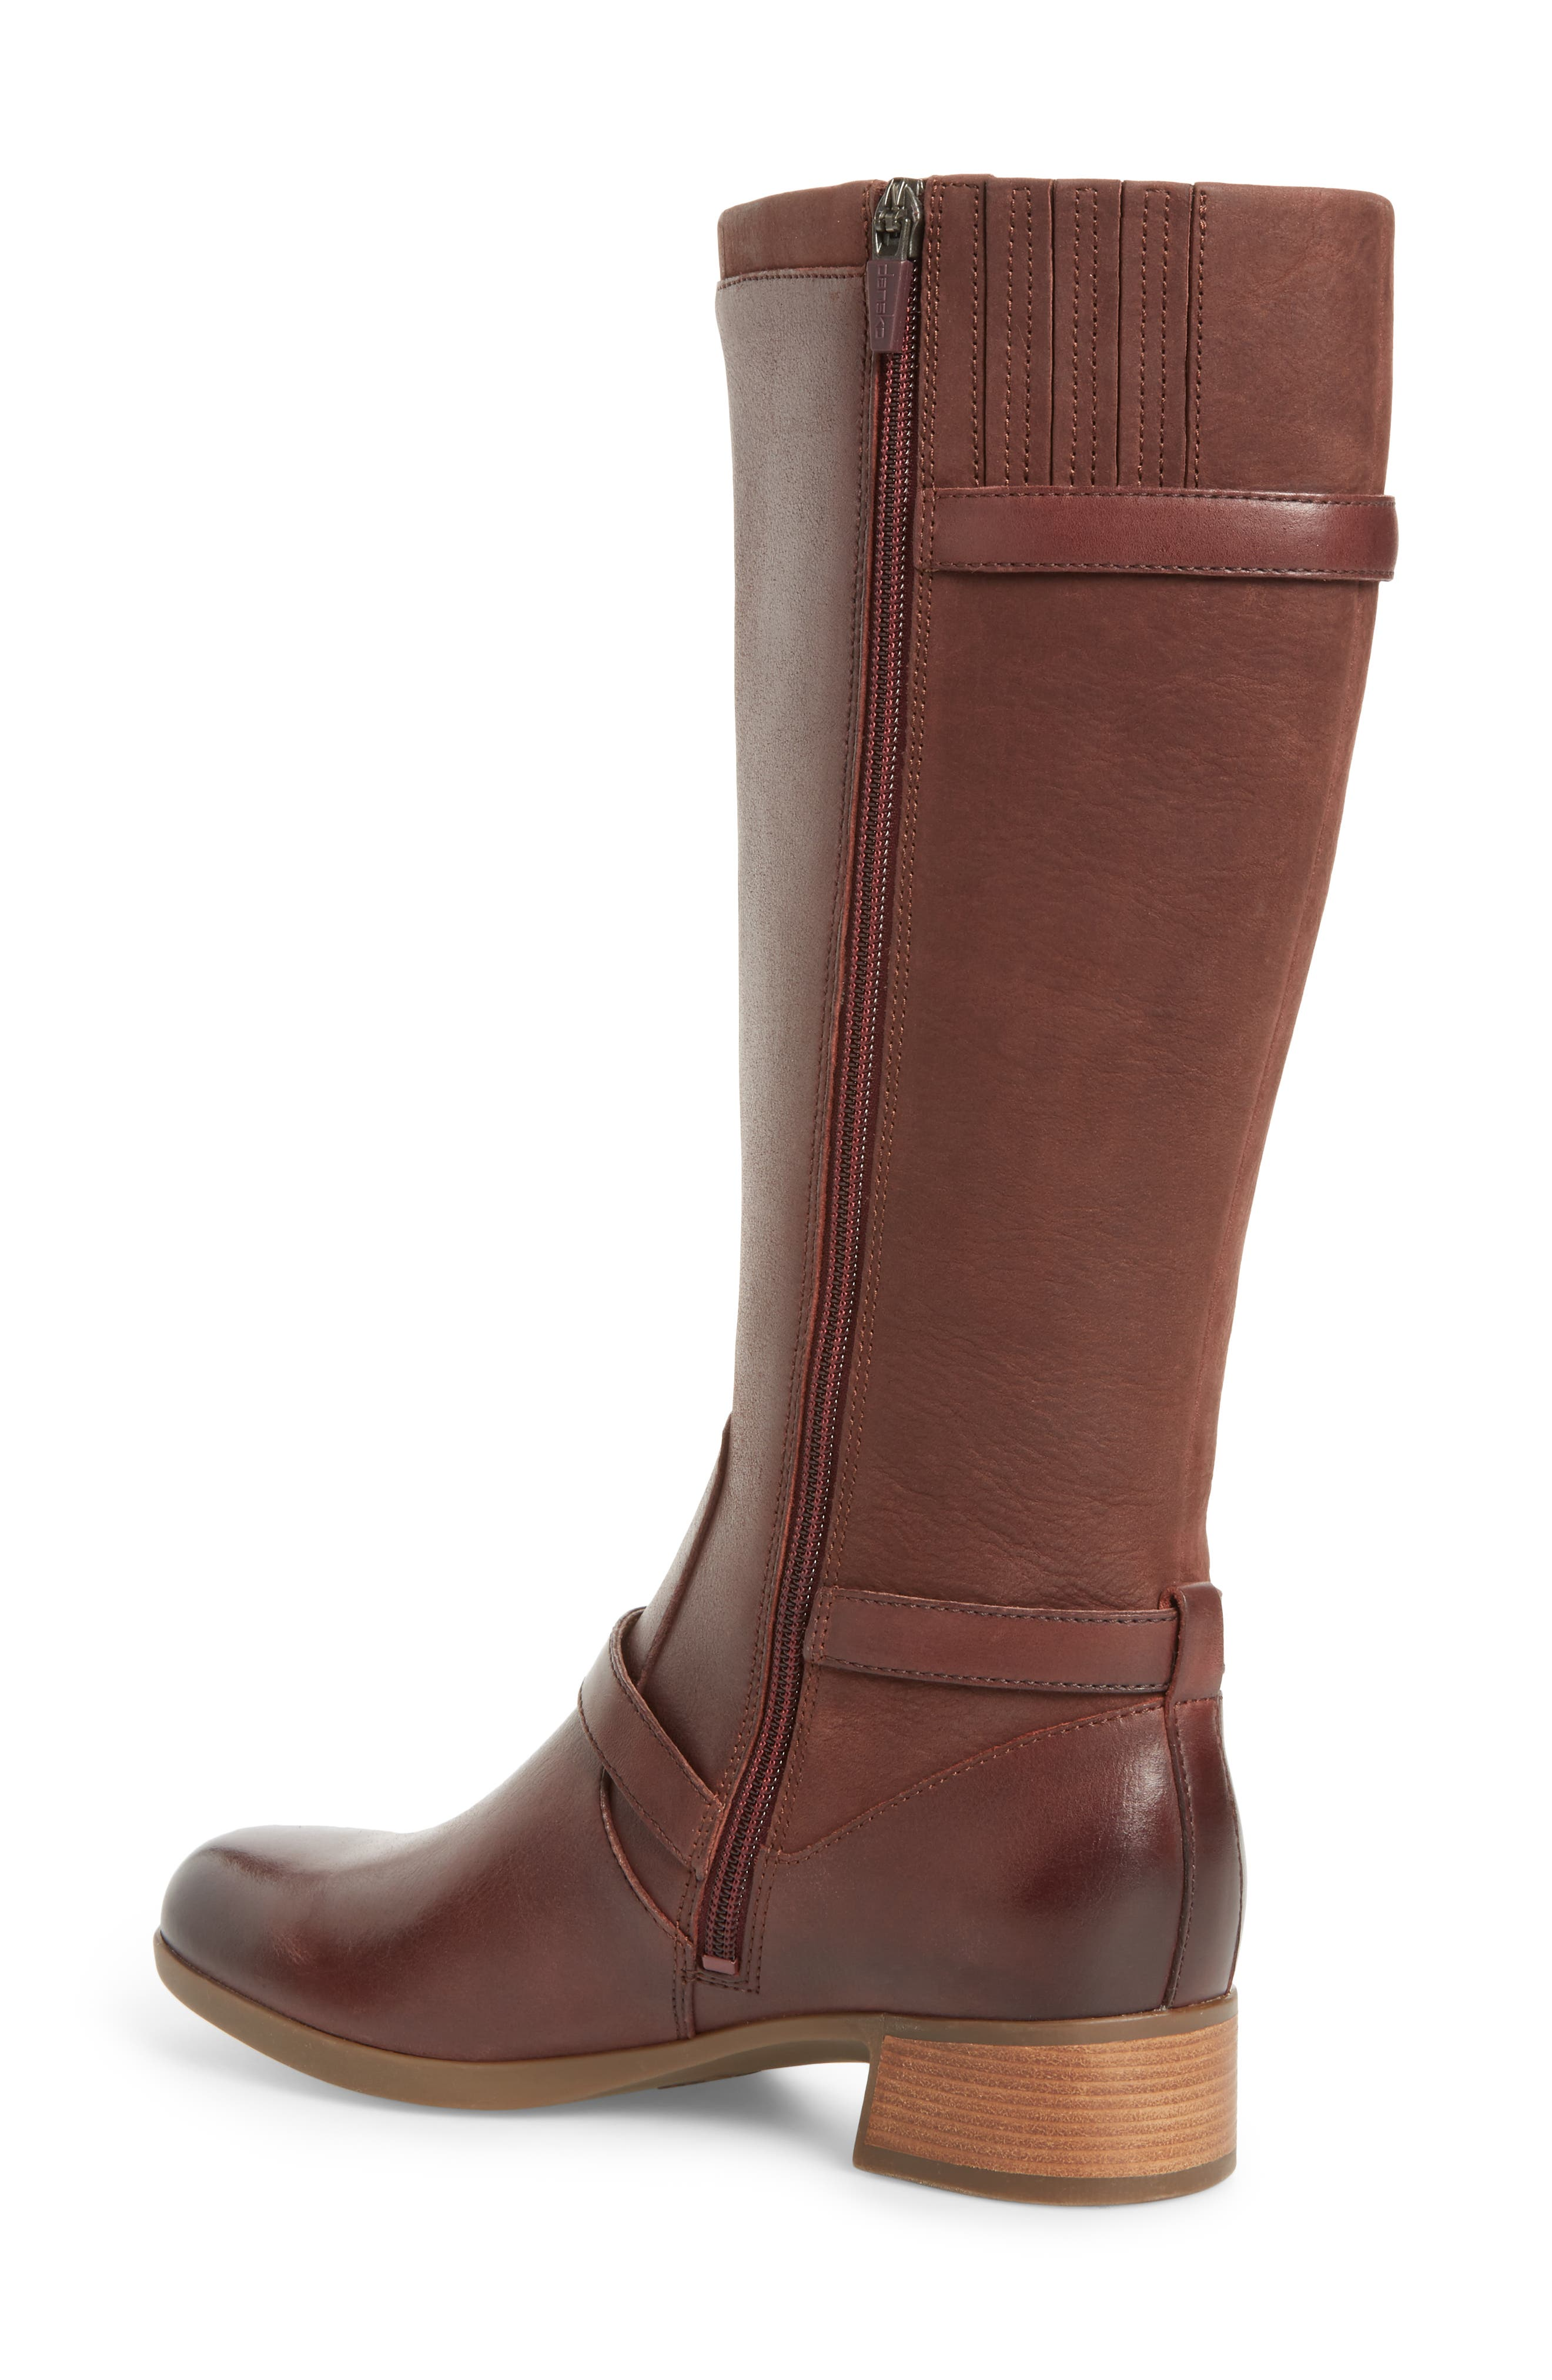 Lorna Tall Boot,                             Alternate thumbnail 2, color,                             Wine Burnished Nappa Leather